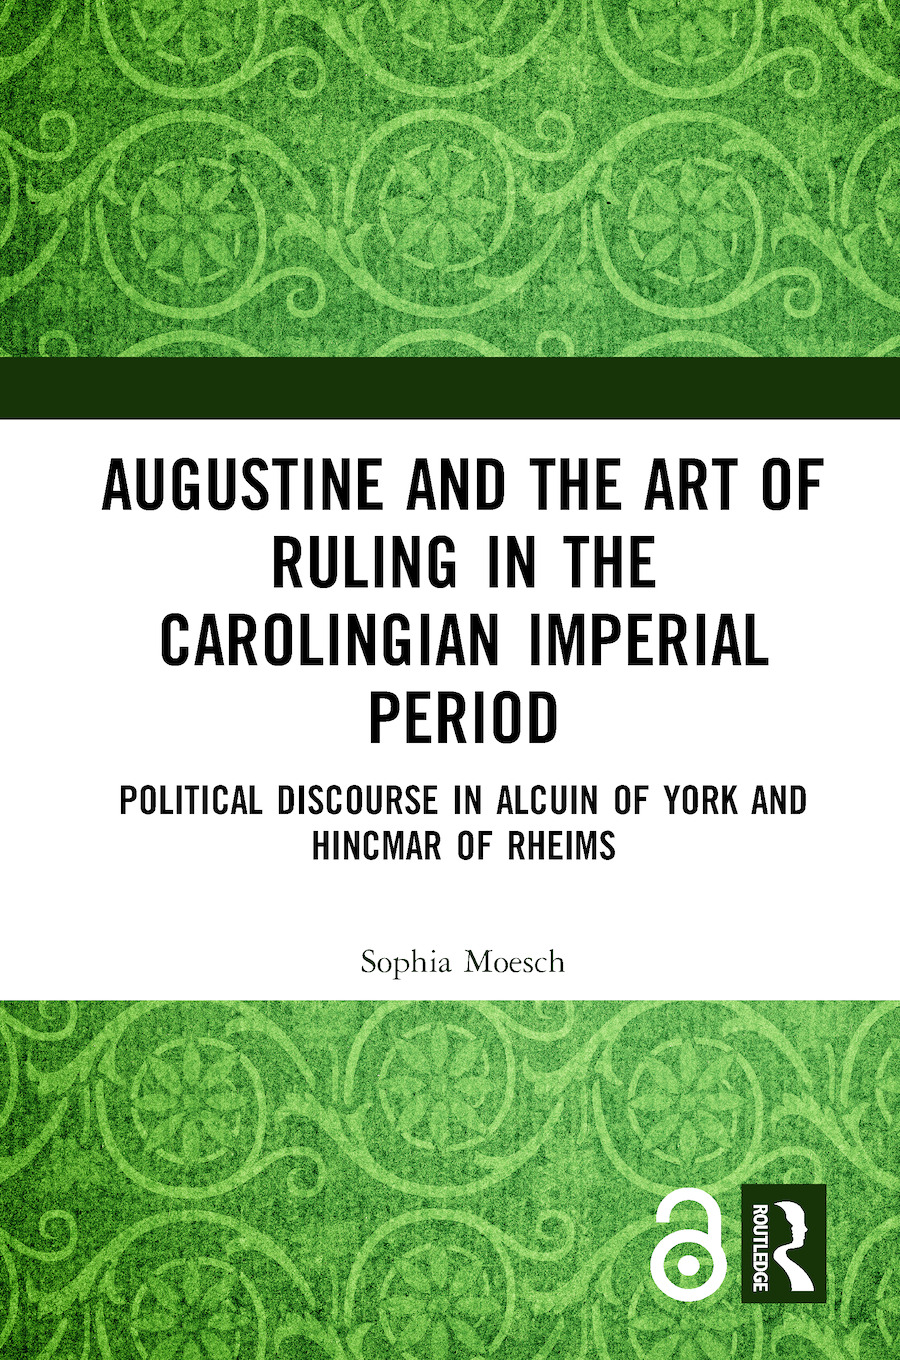 Augustine and the Art of Ruling in the Carolingian Imperial Period: Political Discourse in Alcuin of York and Hincmar of Rheims book cover